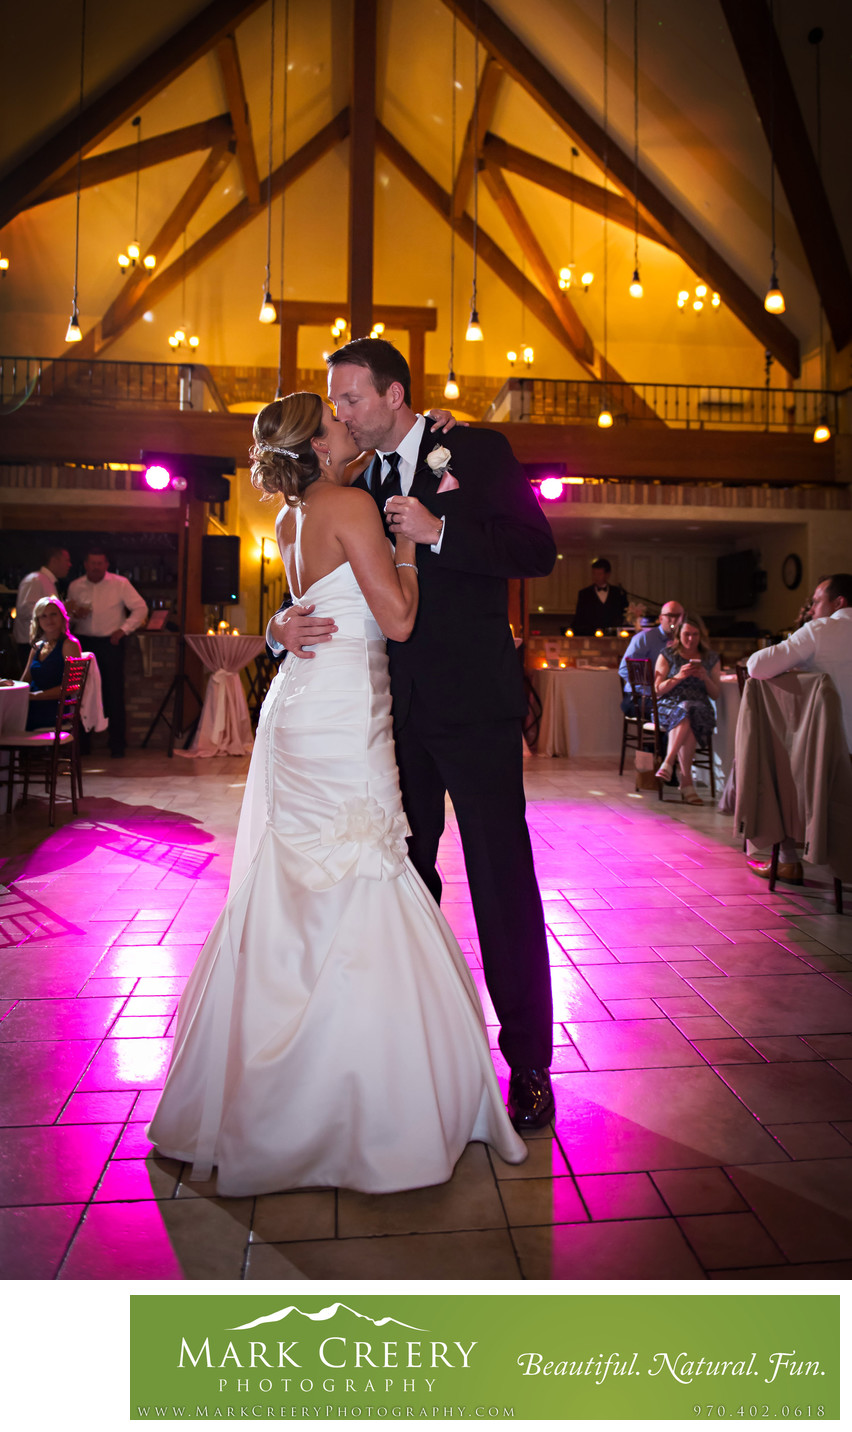 First Dance at Della Terra wedding reception